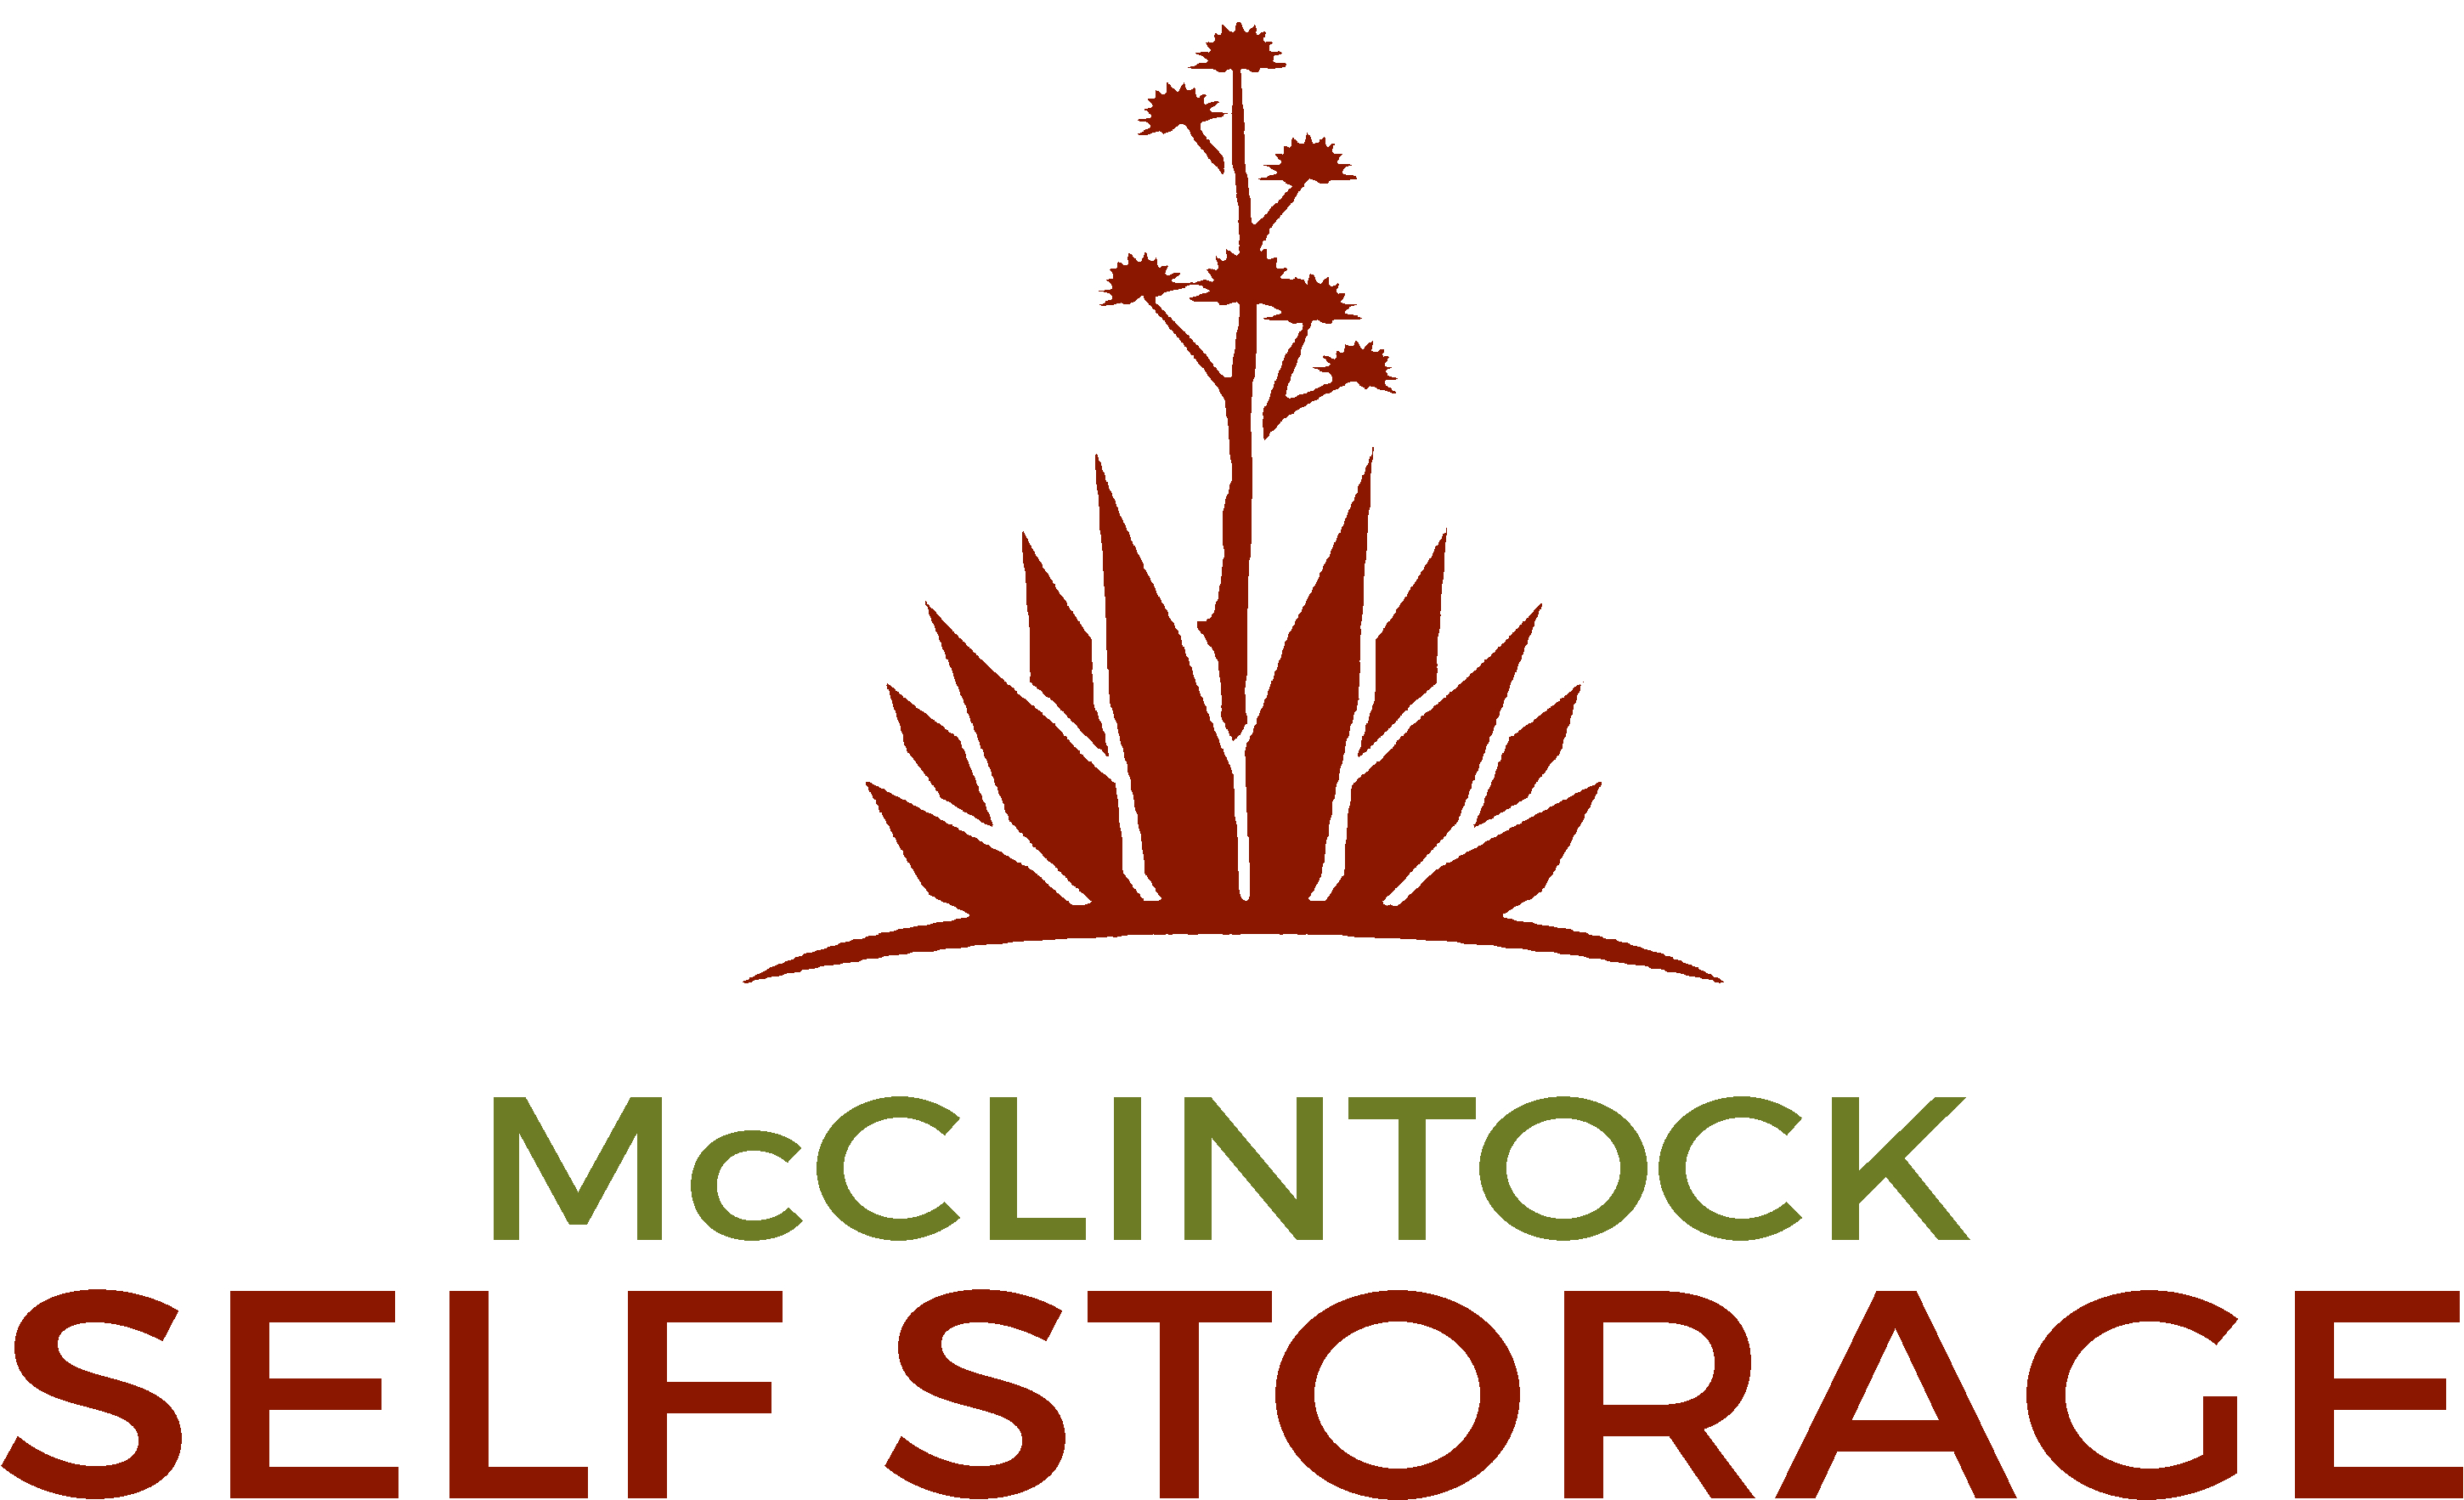 McClintock Self Storage